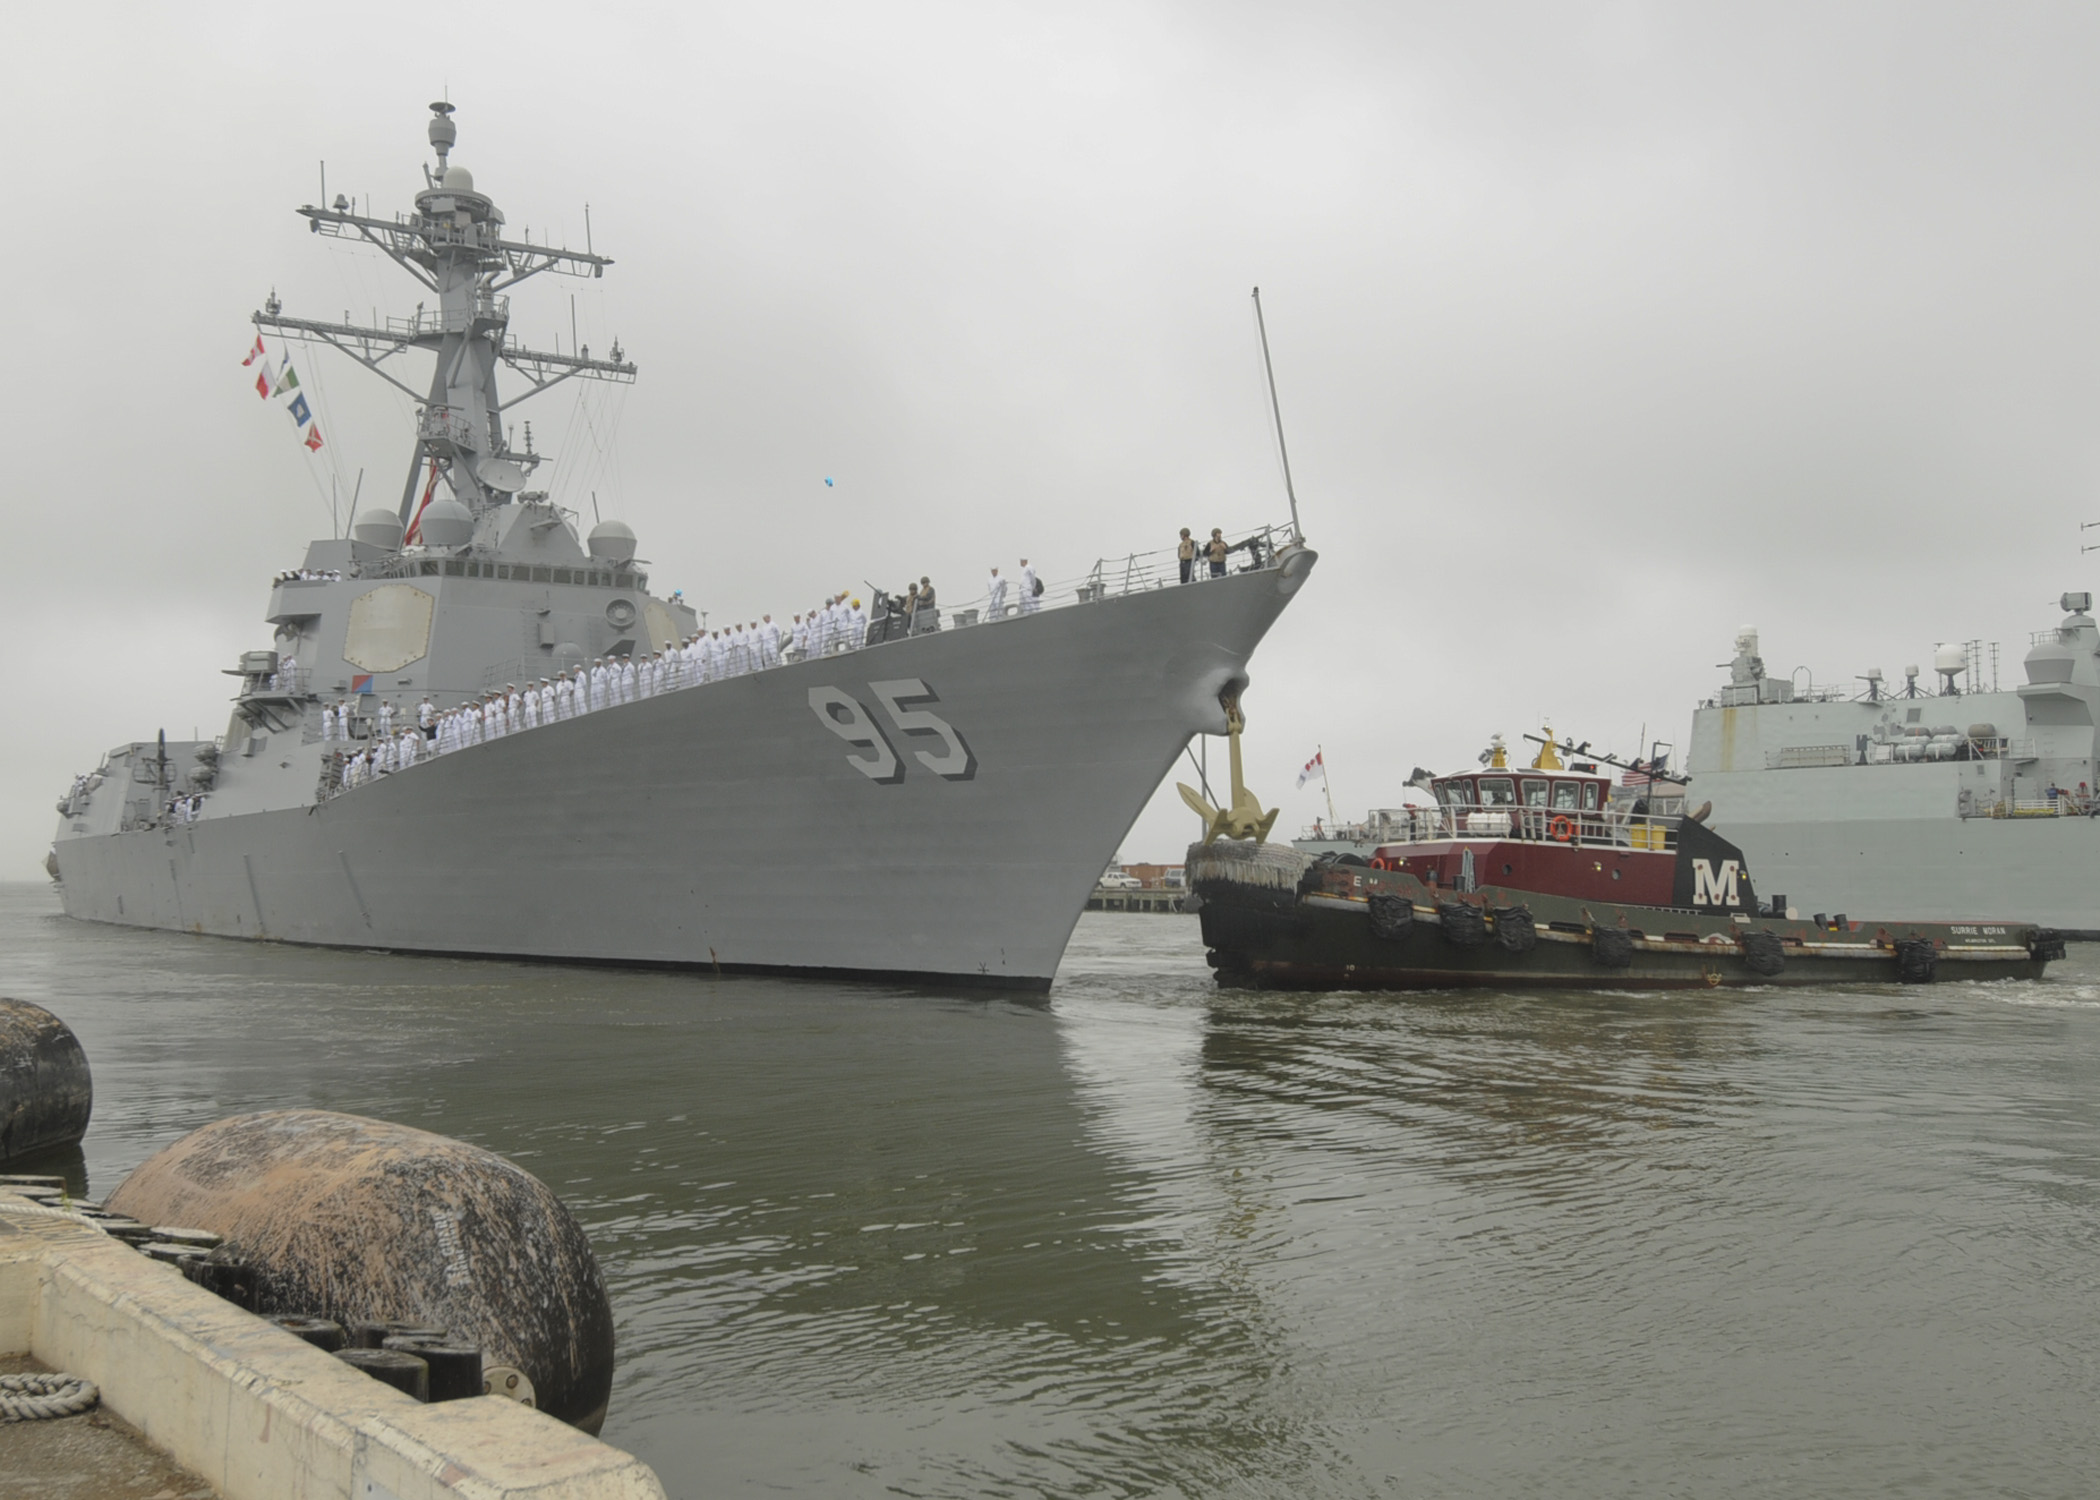 USS James E. Williams (DDG 95) departs Naval Station Norfolk for an eight-month deployment to the U.S. 6th Fleet area of responsibility on May 30, 2014. US Navy Photo